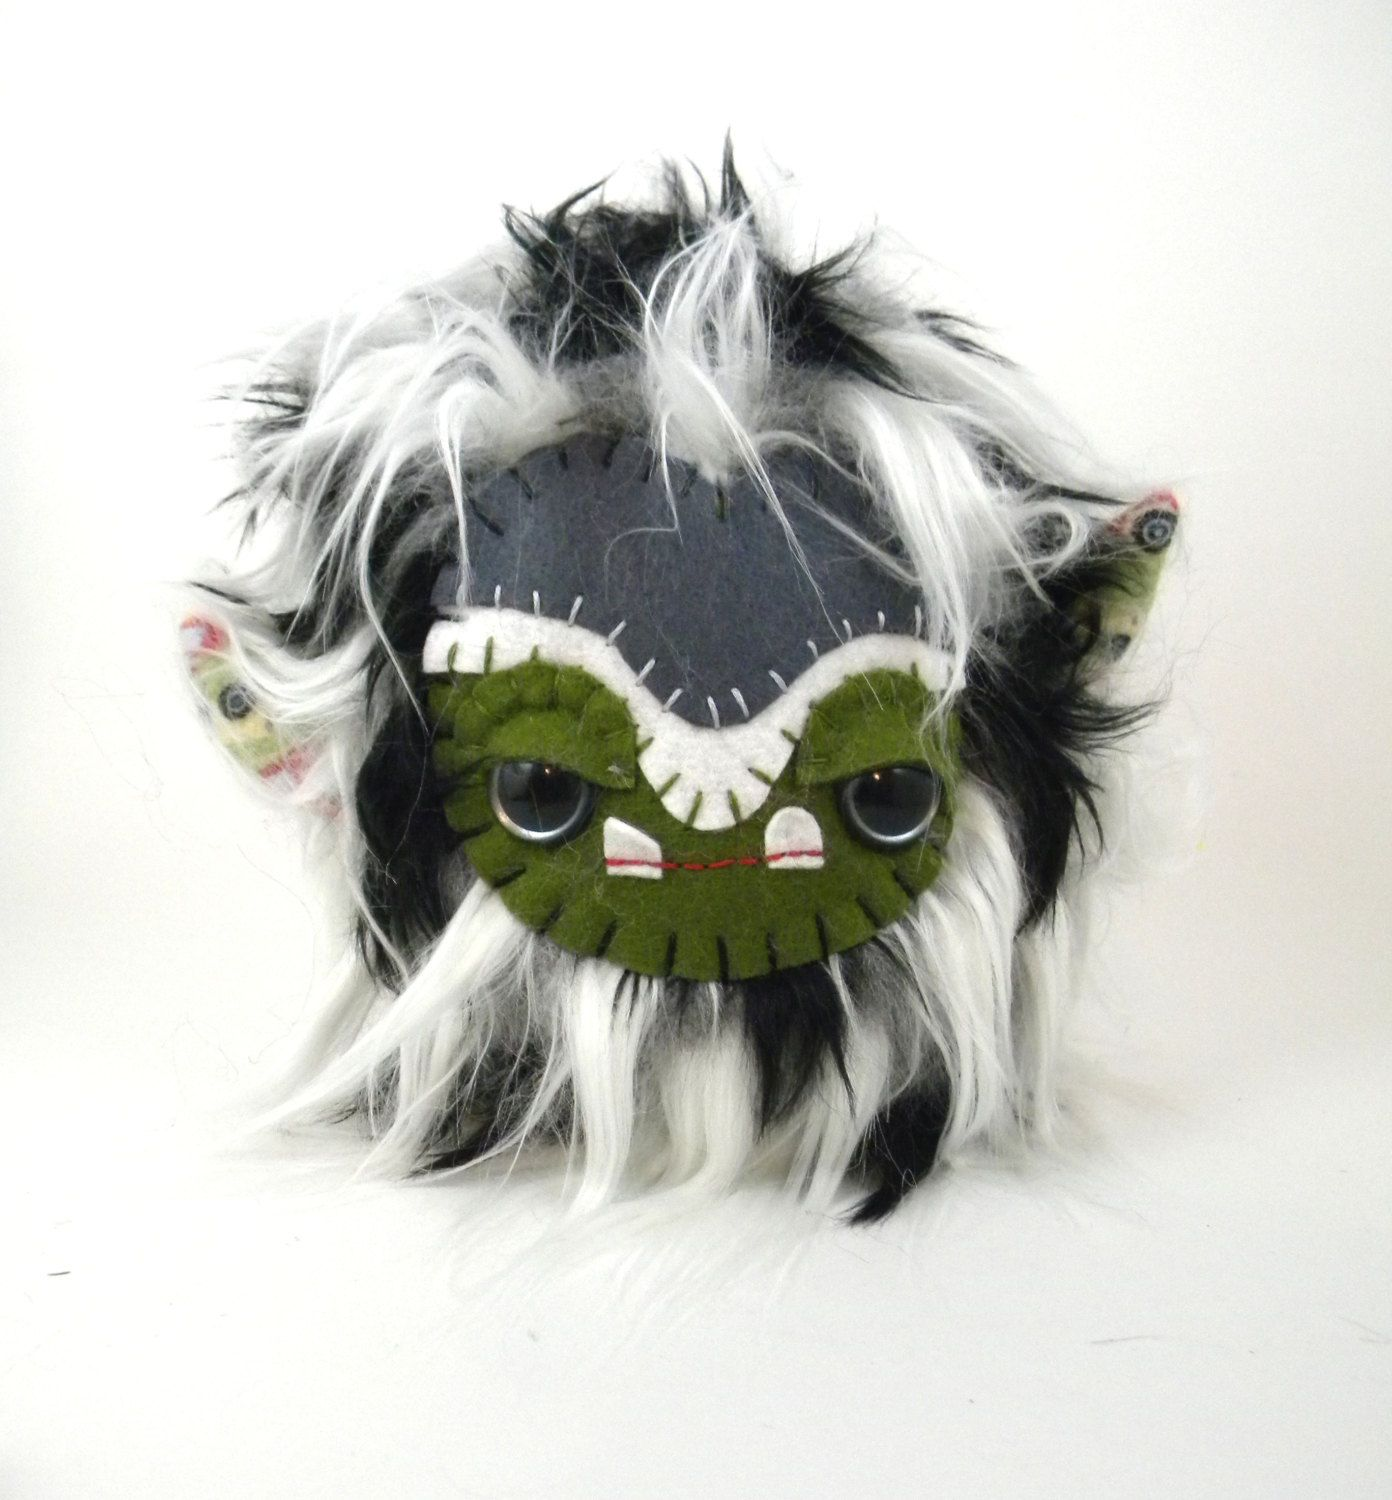 Stuffed Animal Cute Plush Toy Monster Kawaii Plushie Black and White Faux Fur Toy 7 inches tall by TheJaeBird on Etsy